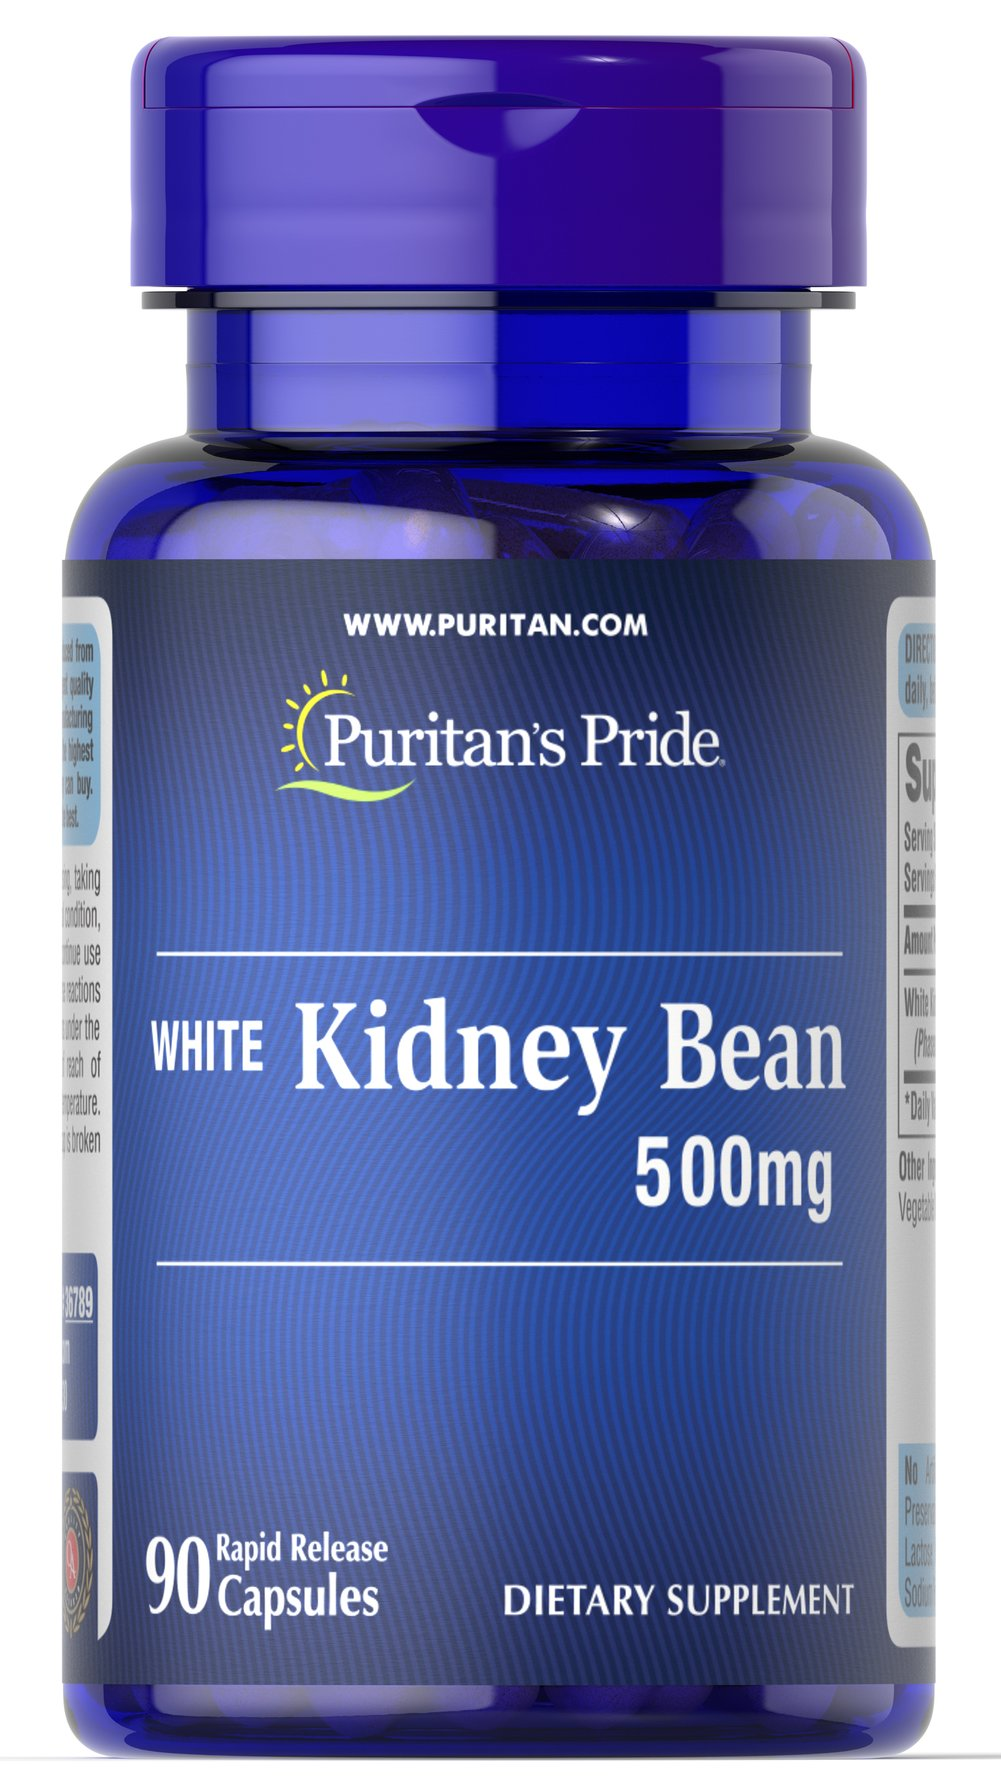 White Kidney Bean <p>•    Traditional ingredient<br />•    1500 mg per serving<br />•    Rapid release capsules<br /><br />White Kidney Bean (Phaseolus vulgaris) has a long history as a culinary ingredient. White Kidney Beans are a source of Vitamin B-6, iron and protein. Each serving of our white kidney bean supplement delivers 1500 mg of white kidney bean to your diet. </p><p